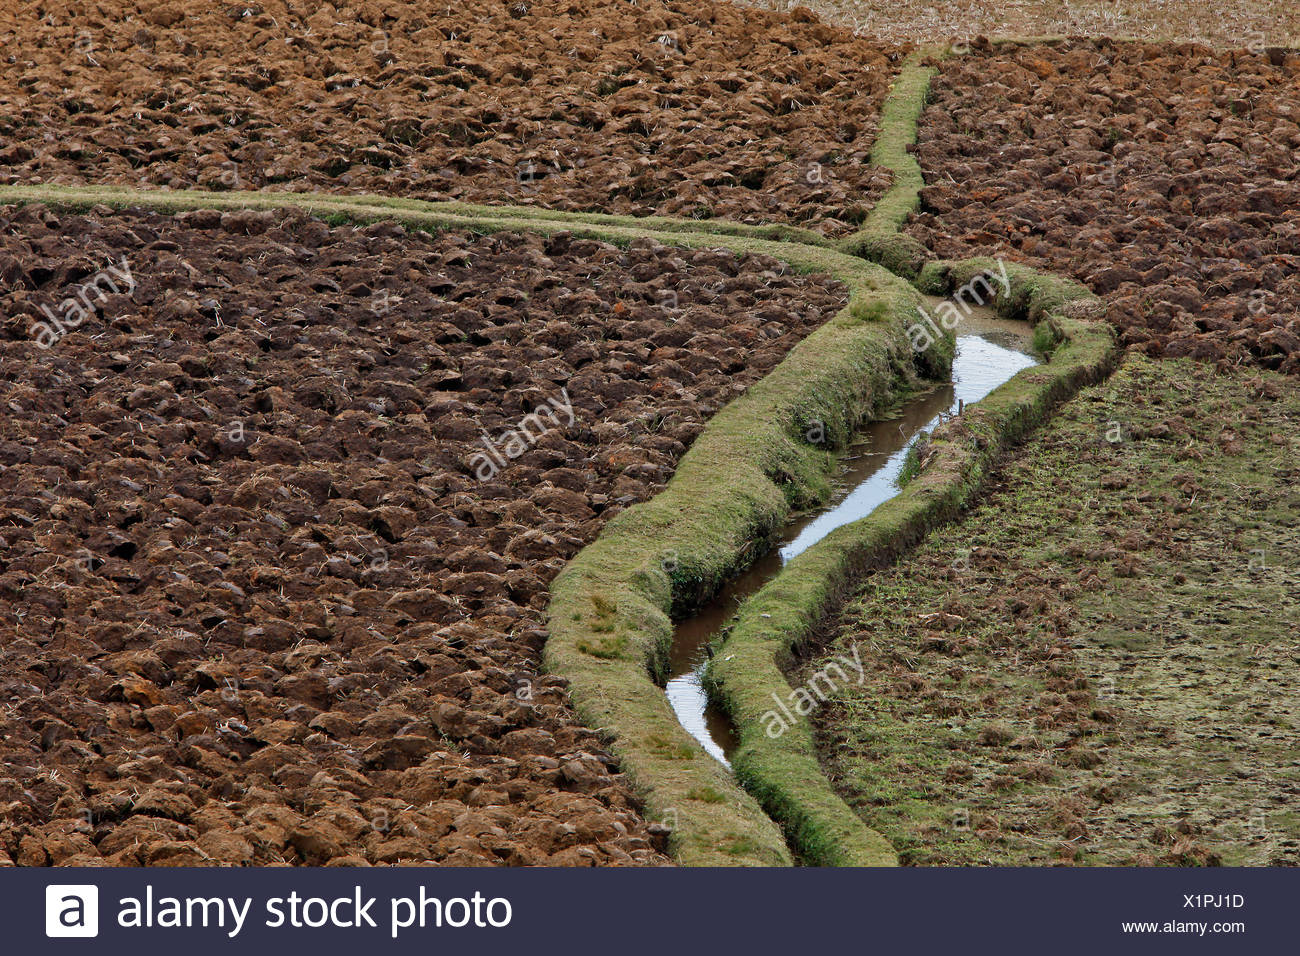 Rice paddy in the central highlands, Madagascar, Africa - Stock Image